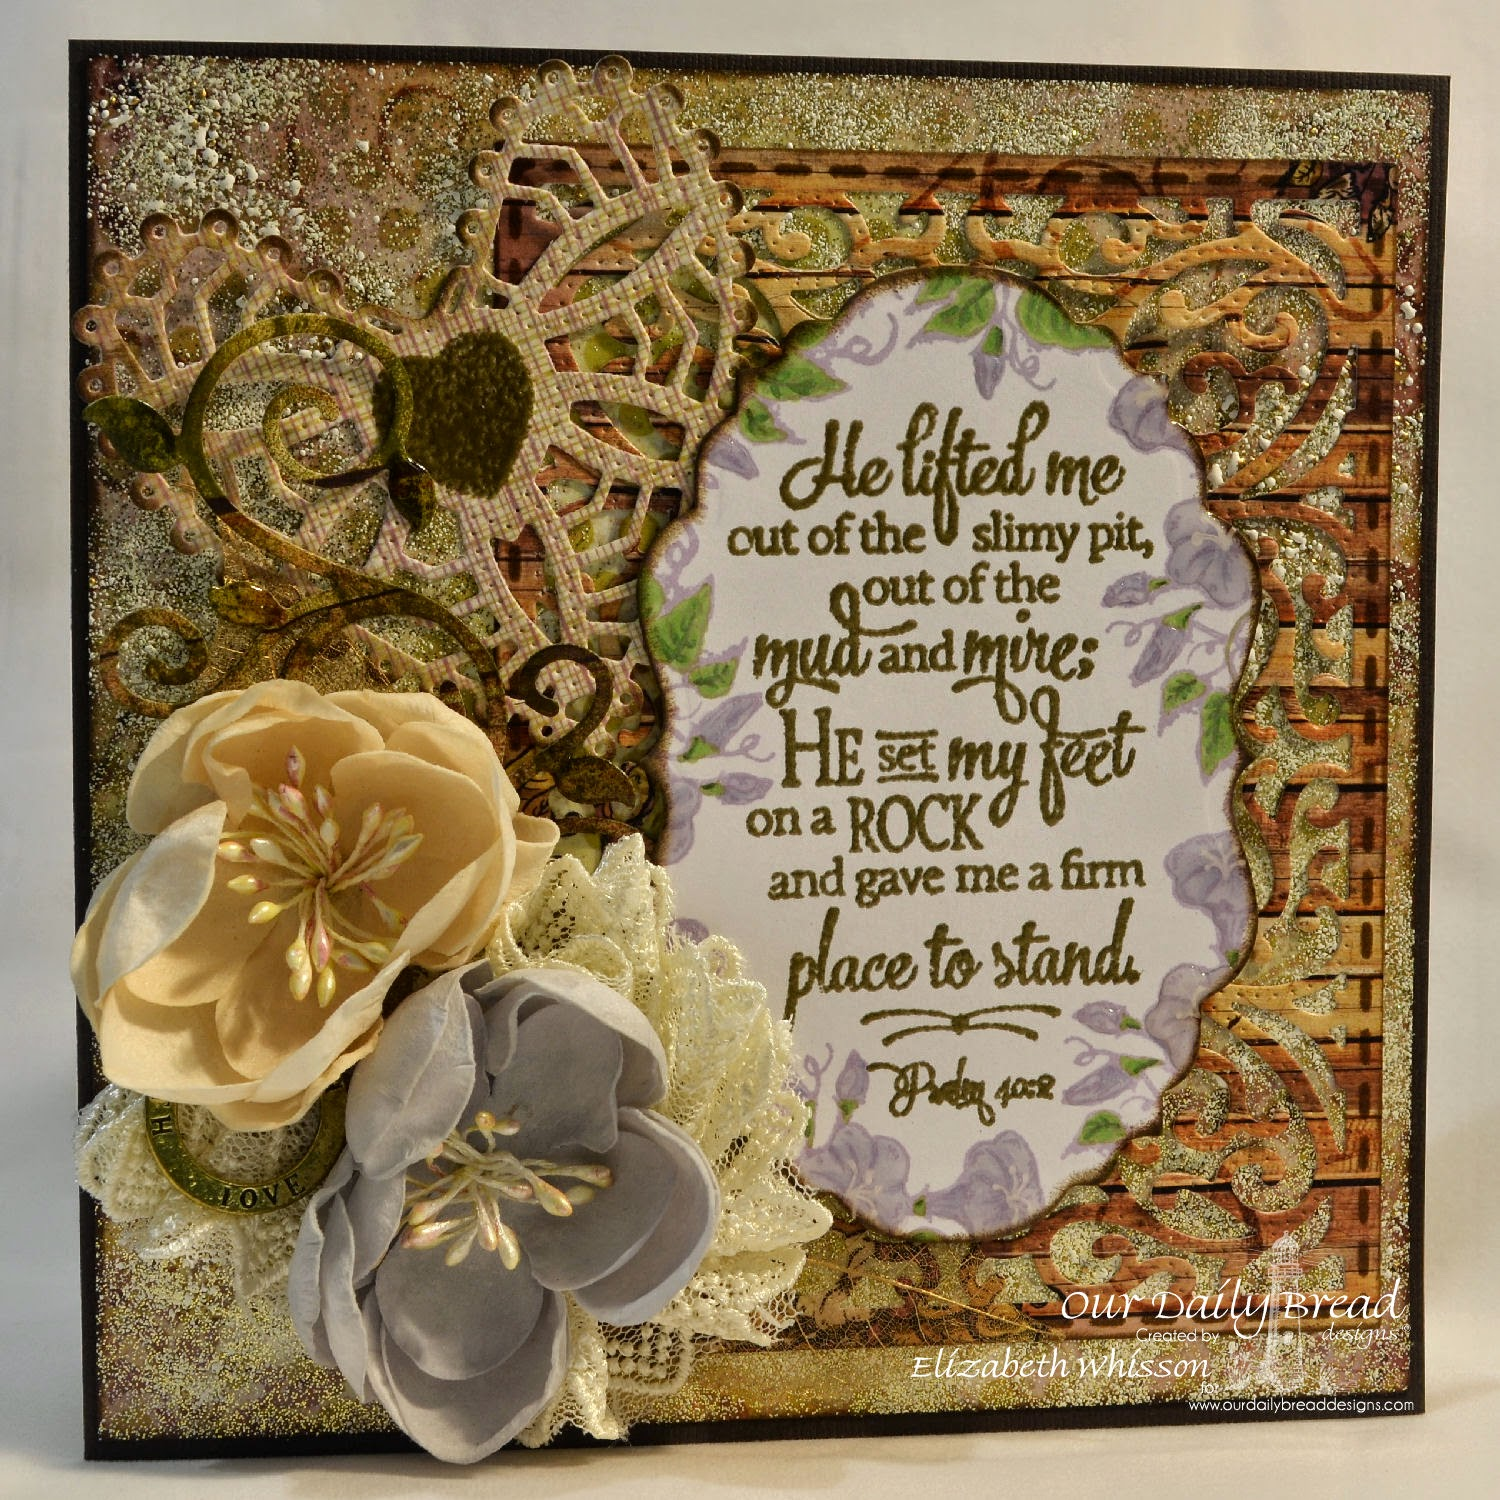 Elizabeth Whisson, Our Daily Bread Designs, ODBD, ODBDDT, ODBDSLC204, Psalm 40:2, shabby chic, Scripture Collection 12, Glory, ODBD Vintage Labels Dies, ODBD Vintage Flourish Pattern Dies, ODBD Ornate Hearts Dies, ODBD Fancy Foliage Dies